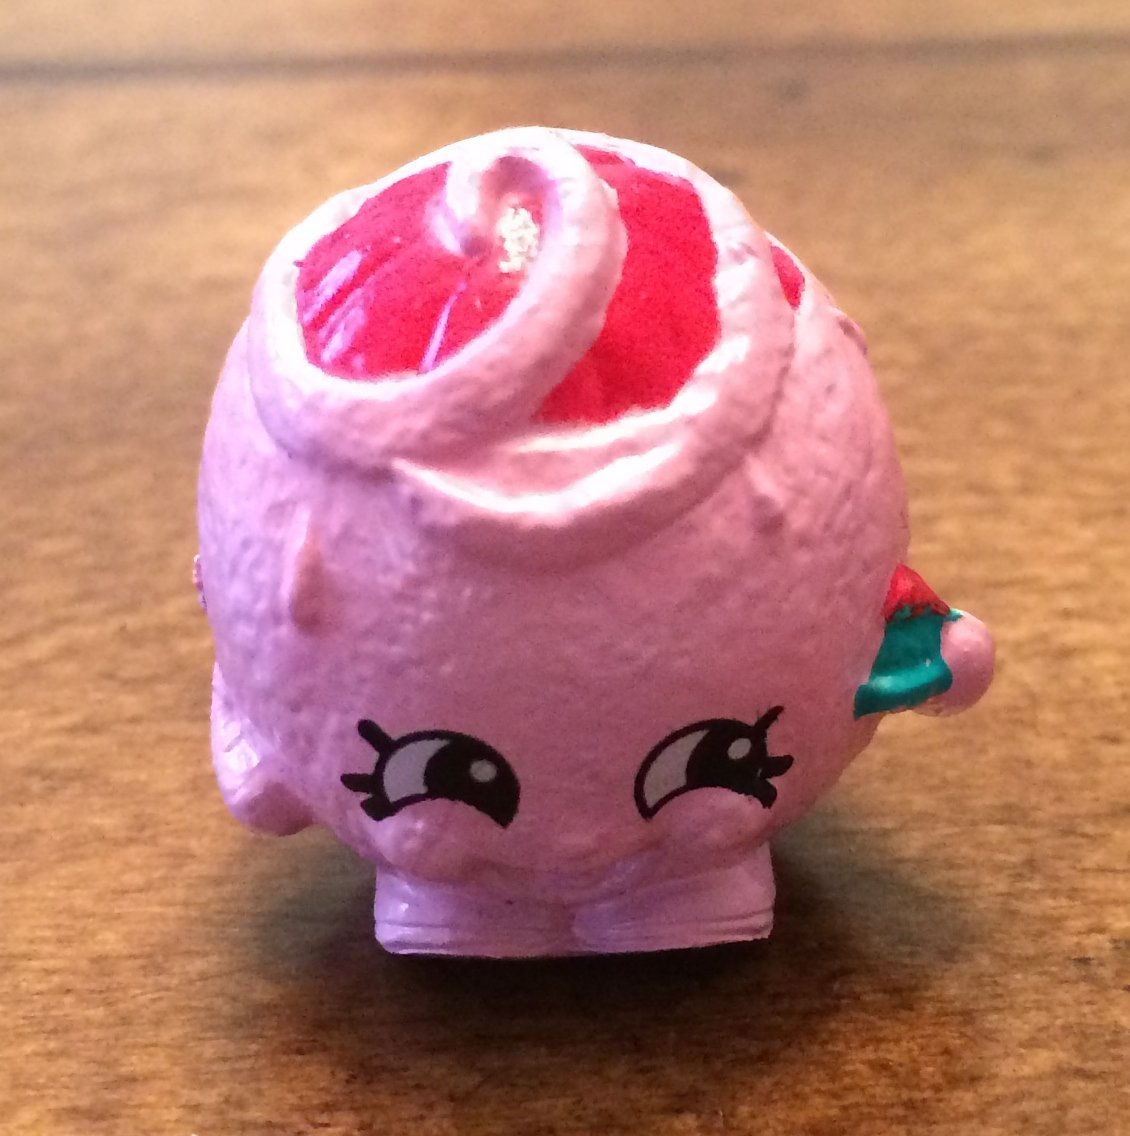 Season 2 #2-011 Juicy Orange, Shopkins - Season 2 Figure By Shopkins